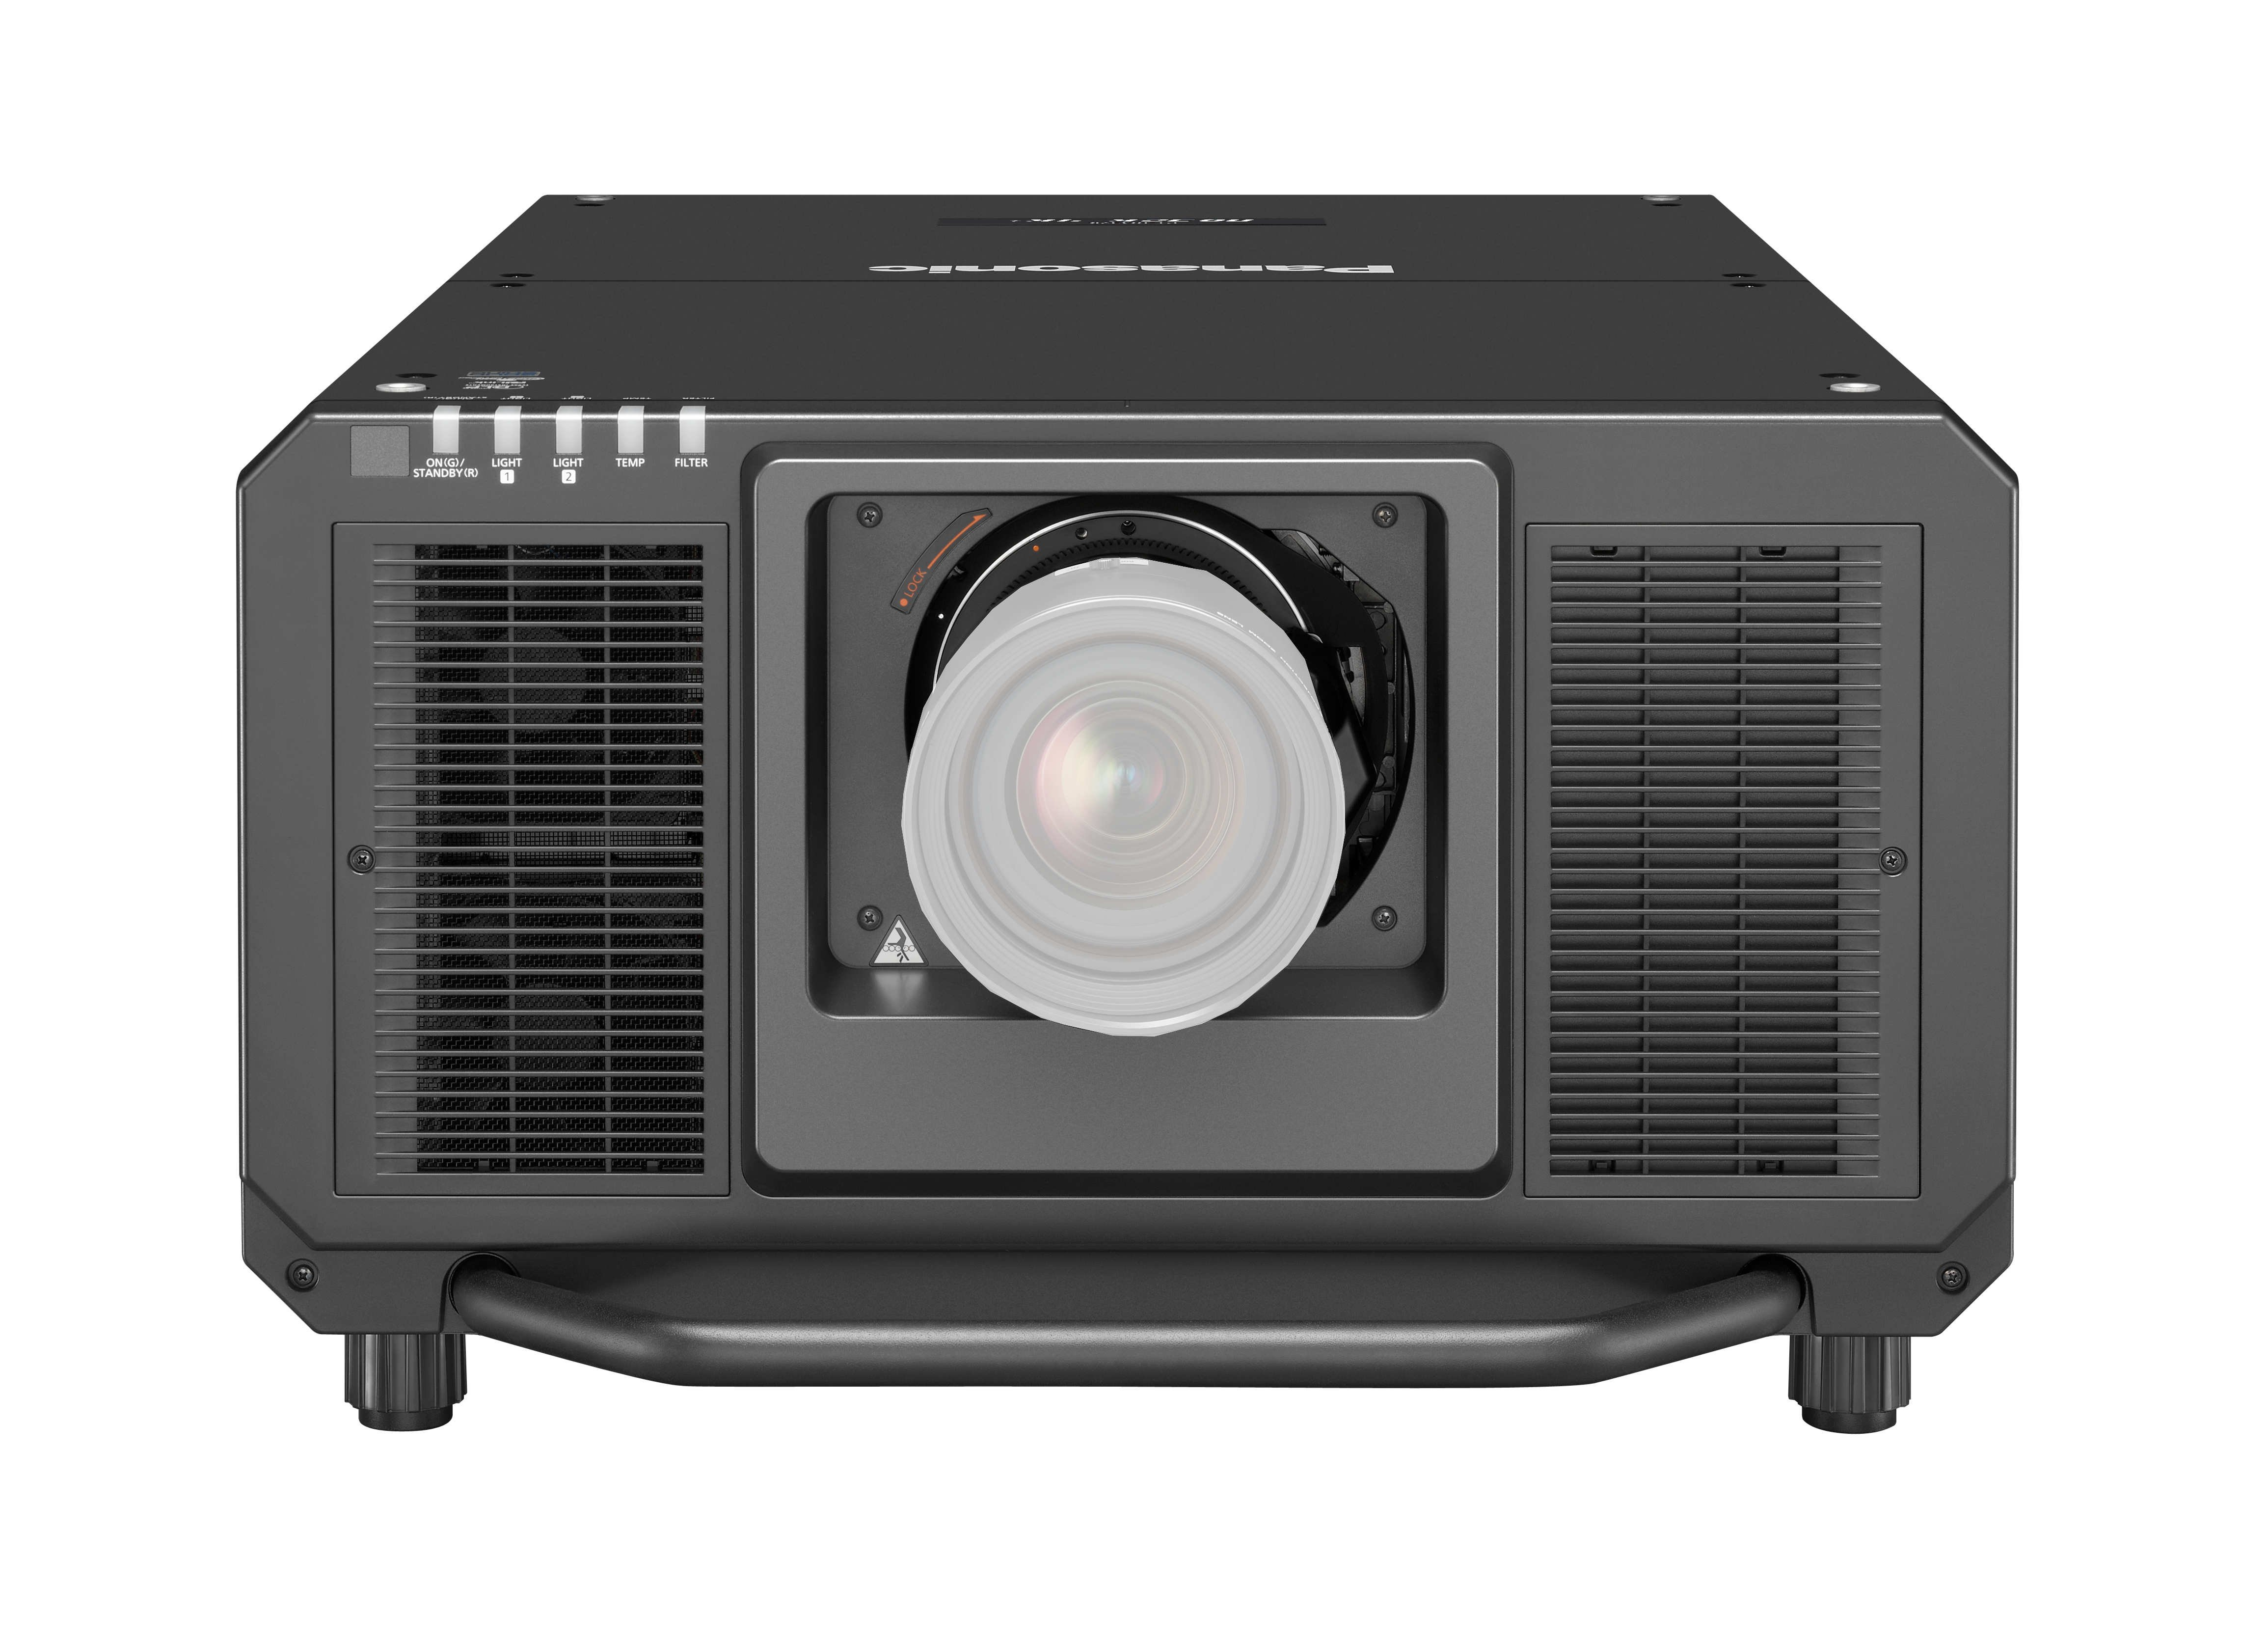 27000 Lumen 3-Chip DLP Large Venue Laser Projector - Body Only